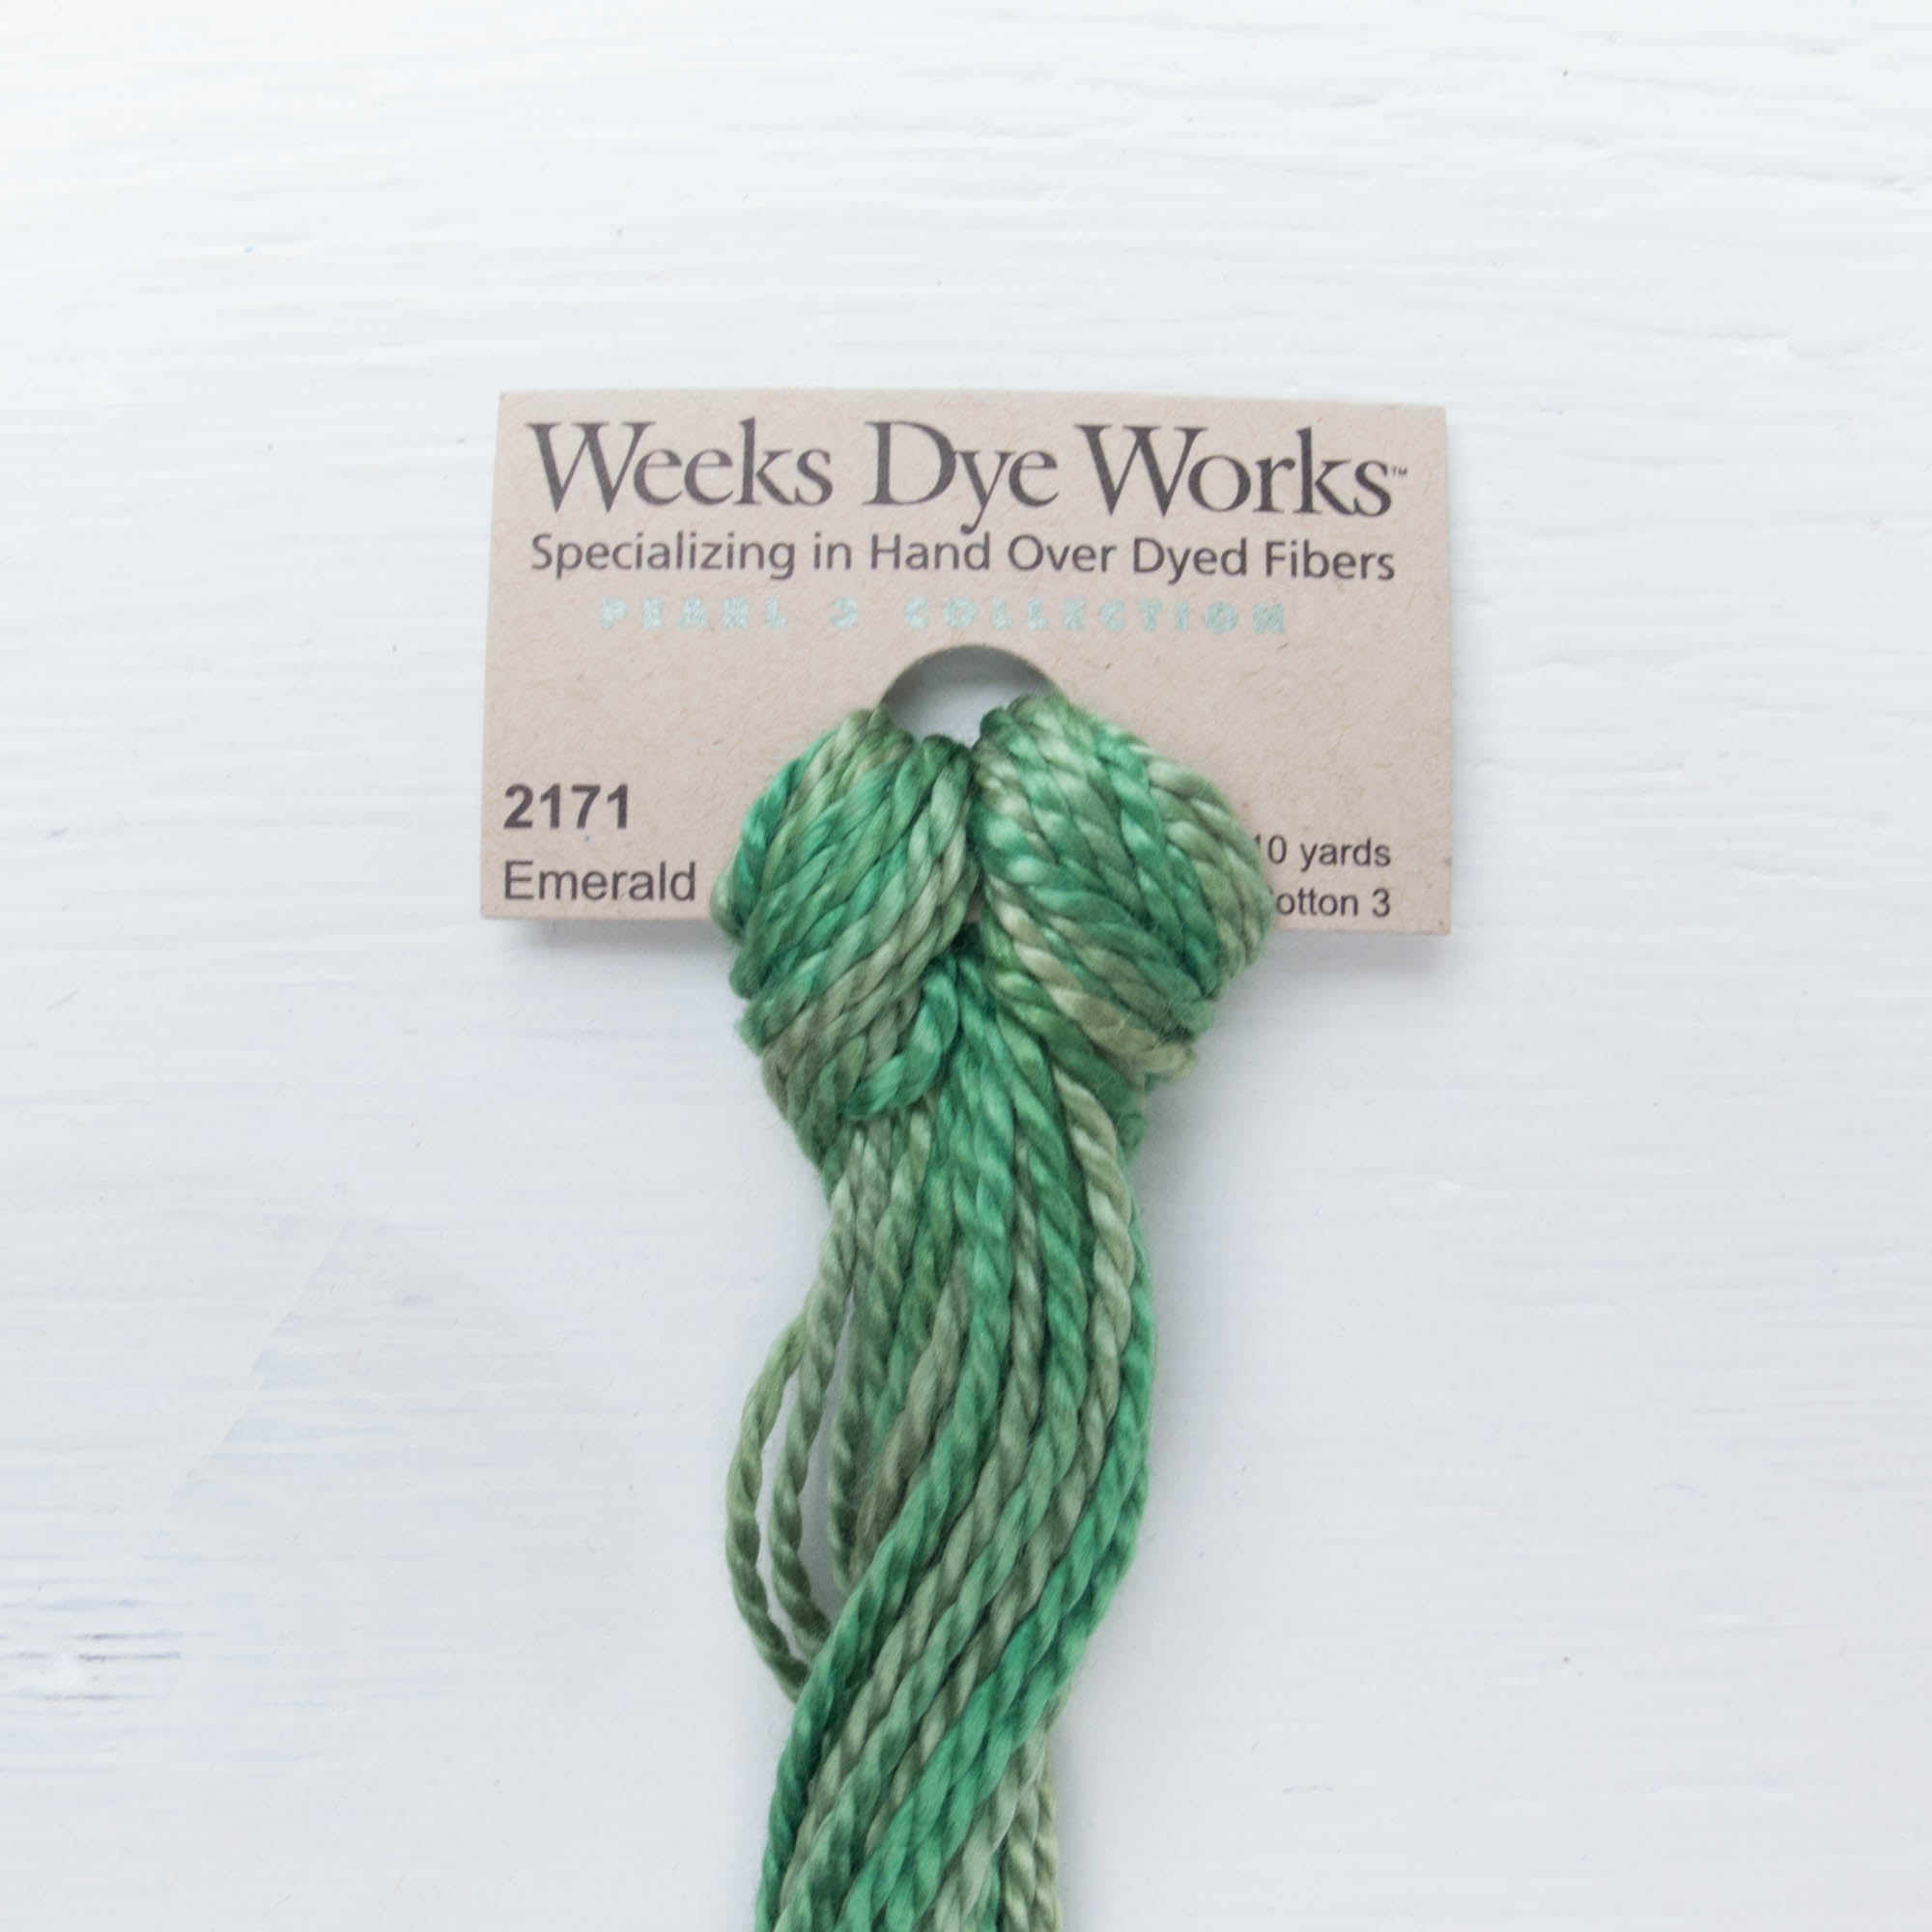 Size 3 Perle Cotton Thread - Weeks Dye Works Emerald (2171) Perle Cotton - Snuggly Monkey